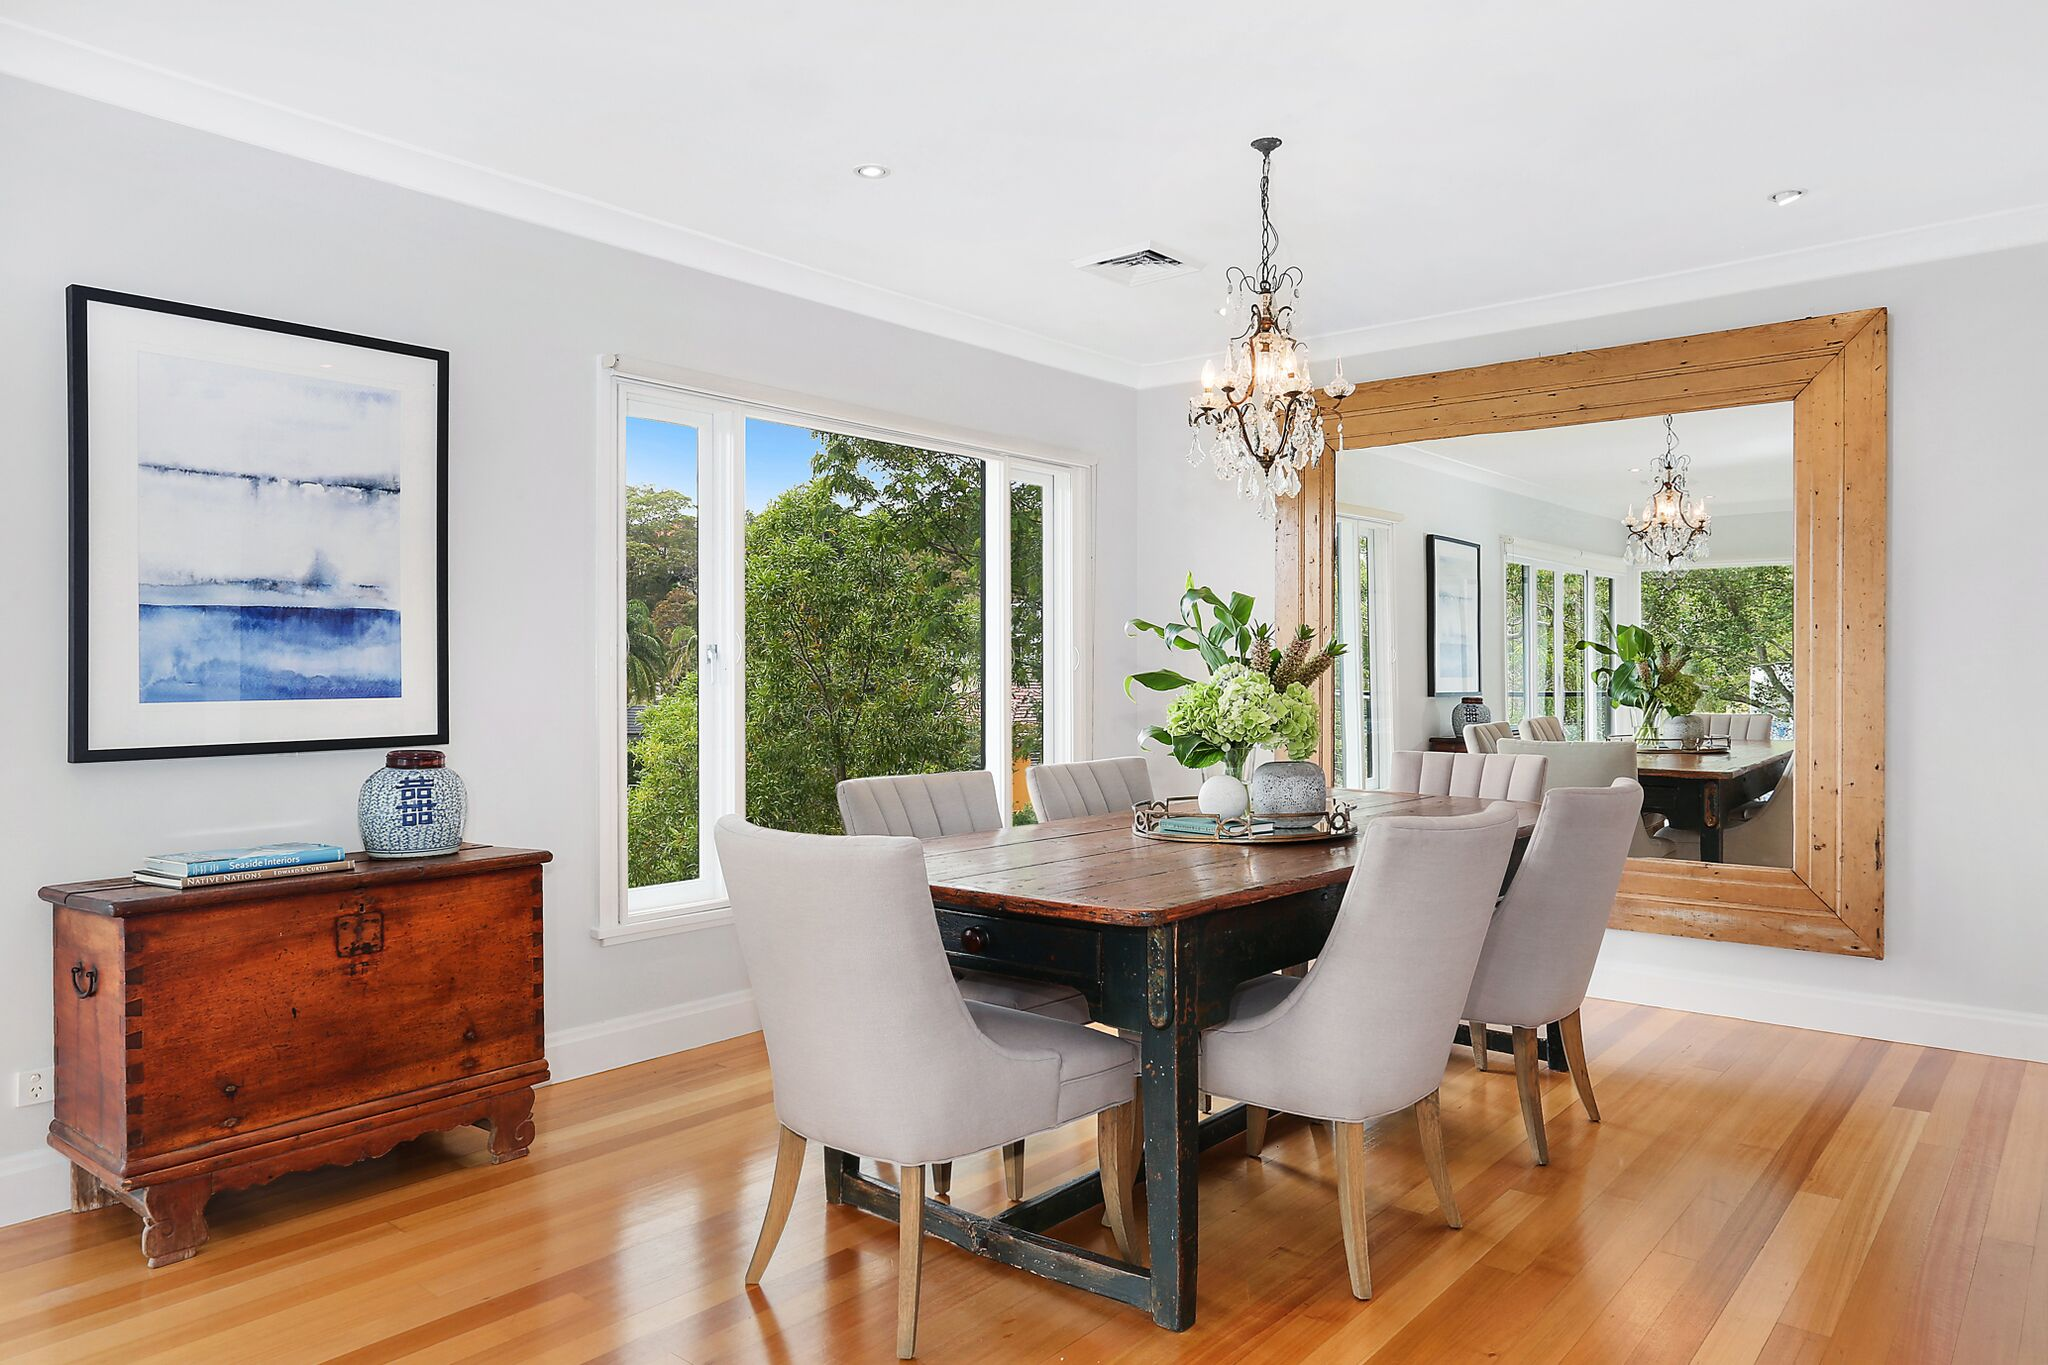 The stylish Hamptons inspired home has a price expectation of between $5.5m-6m.